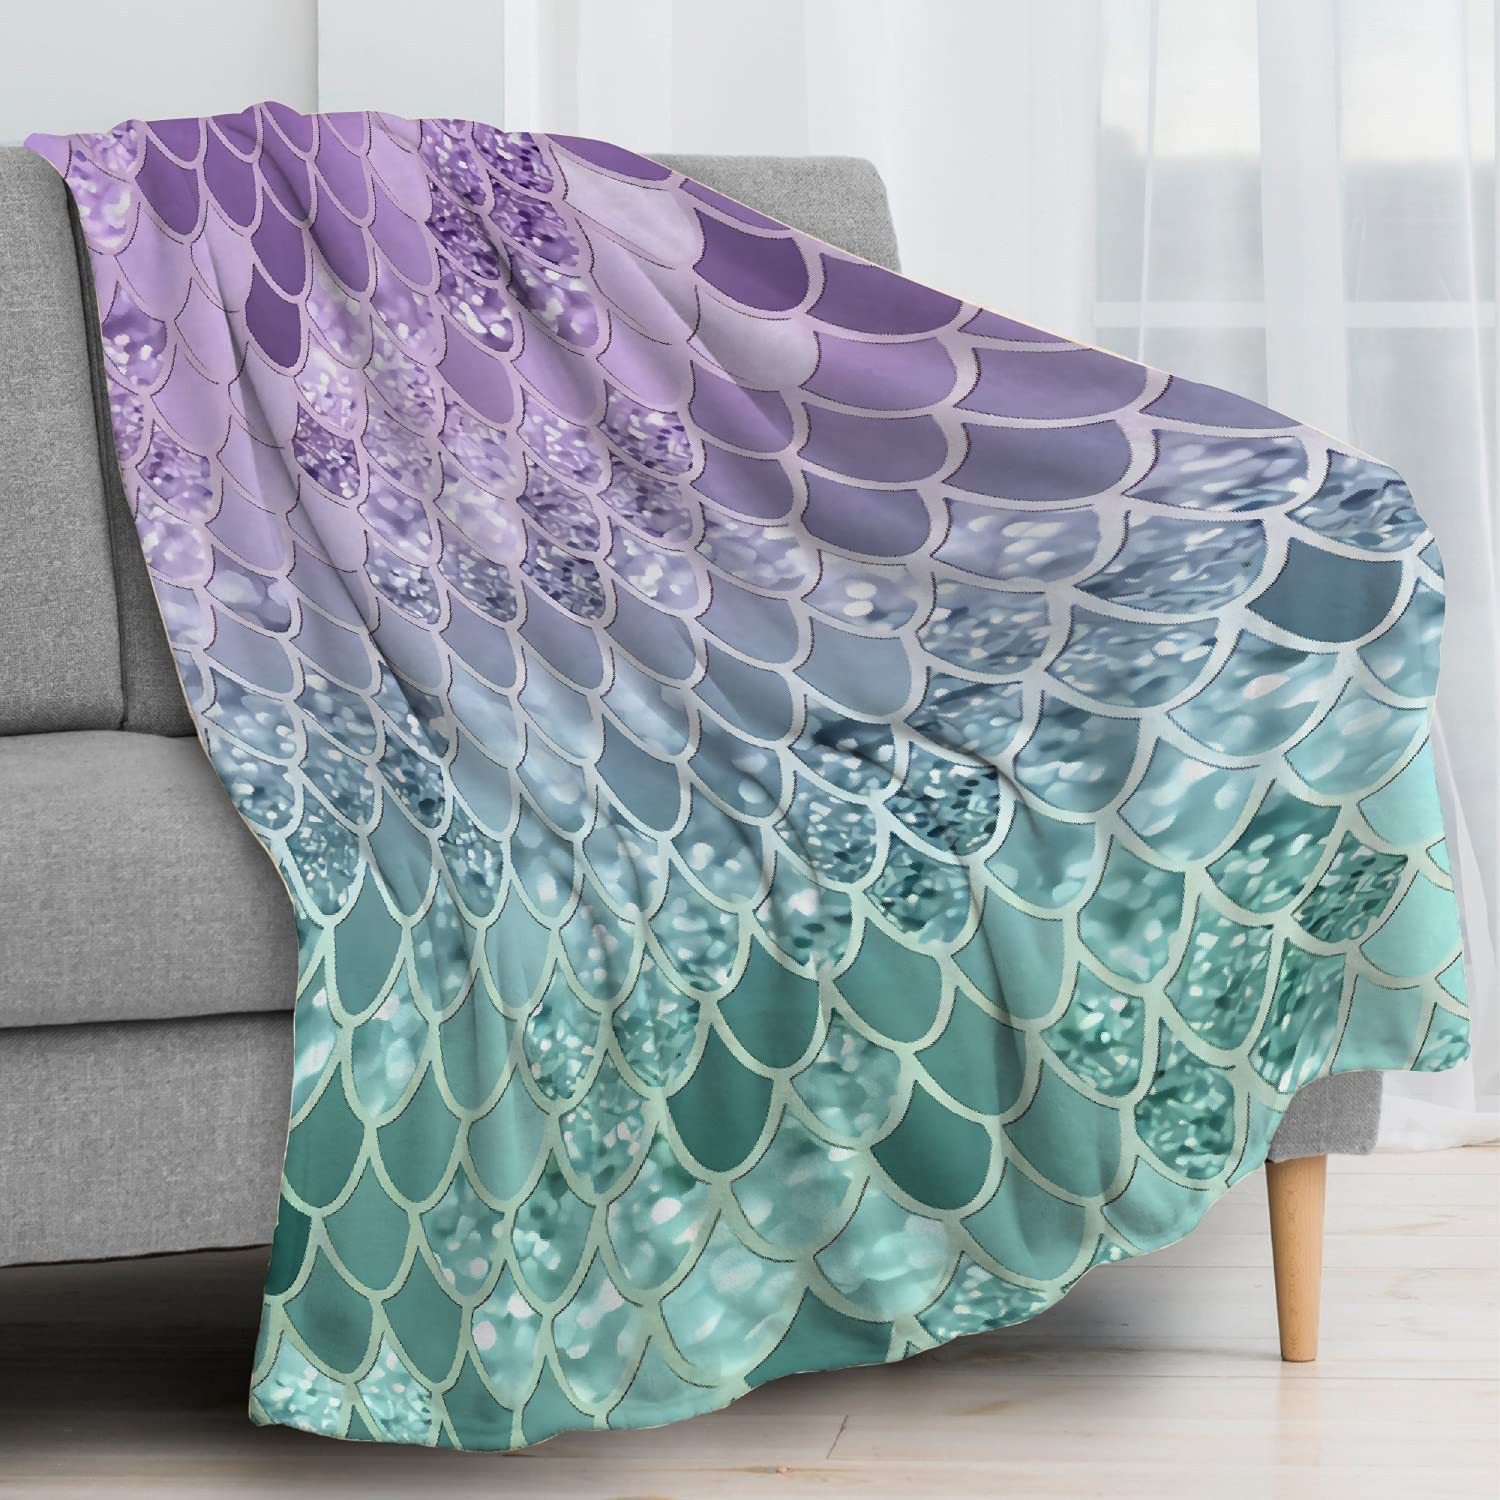 Anomadassi Mermaid Max 70% OFF Scales Flannel Ranking TOP2 Lightweight Size Blanket Throw